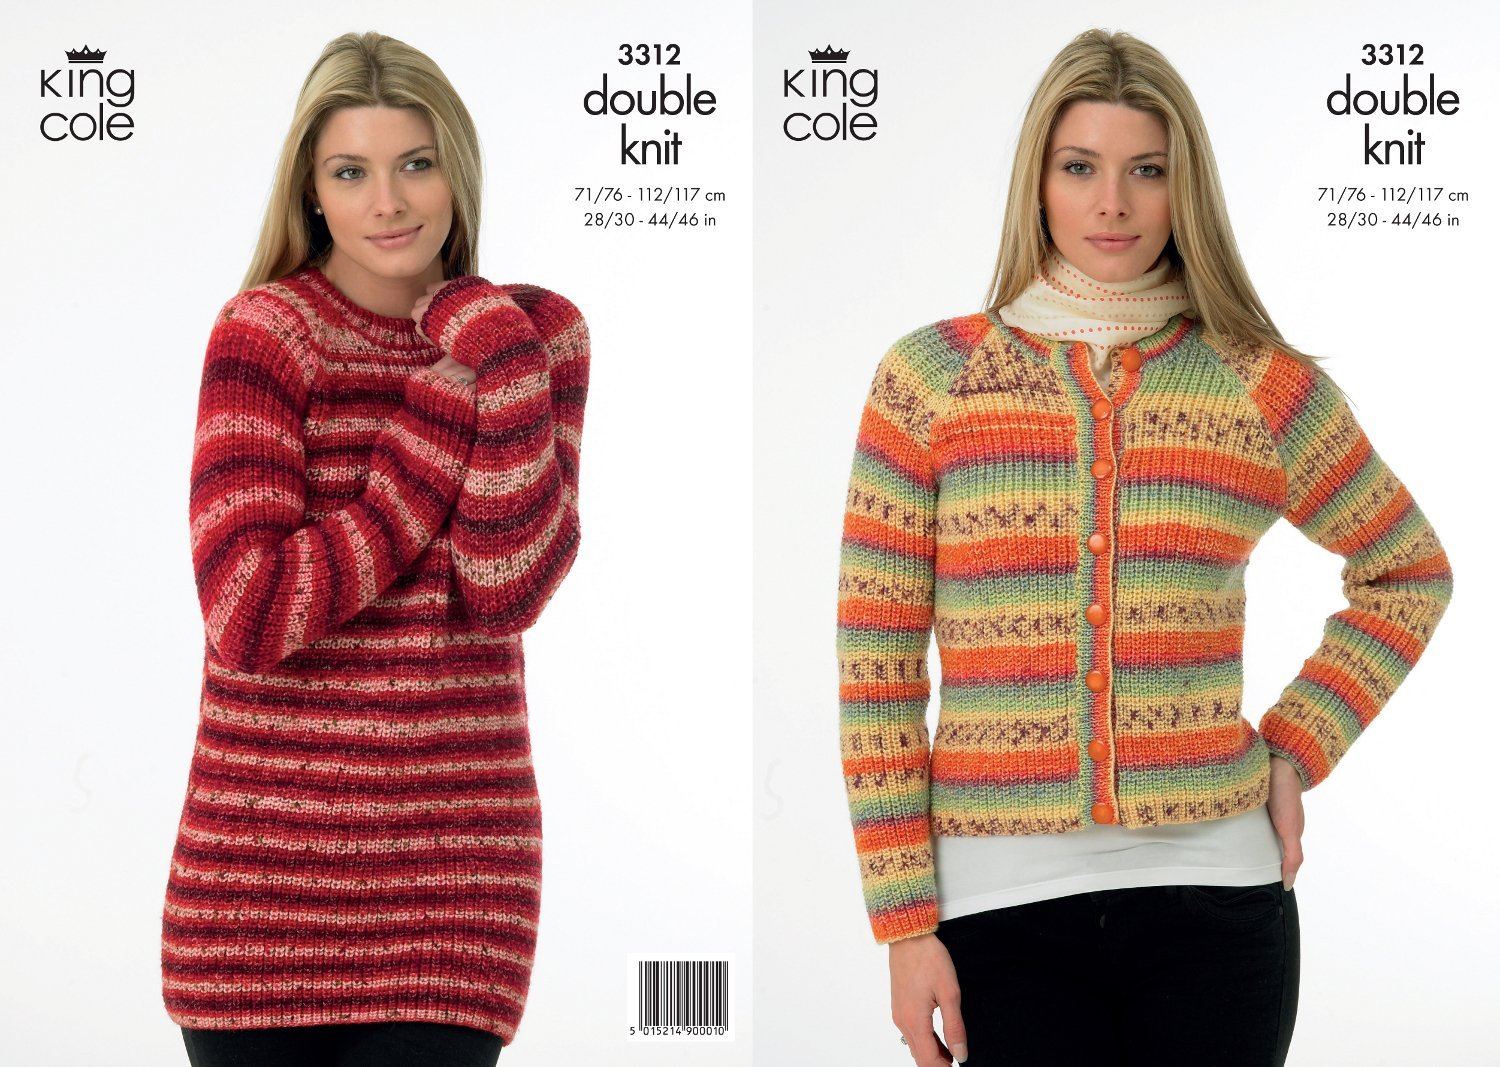 King Cole Knitting Pattern 3312 : Lady\'s/Girl\'s DK Knitted ...